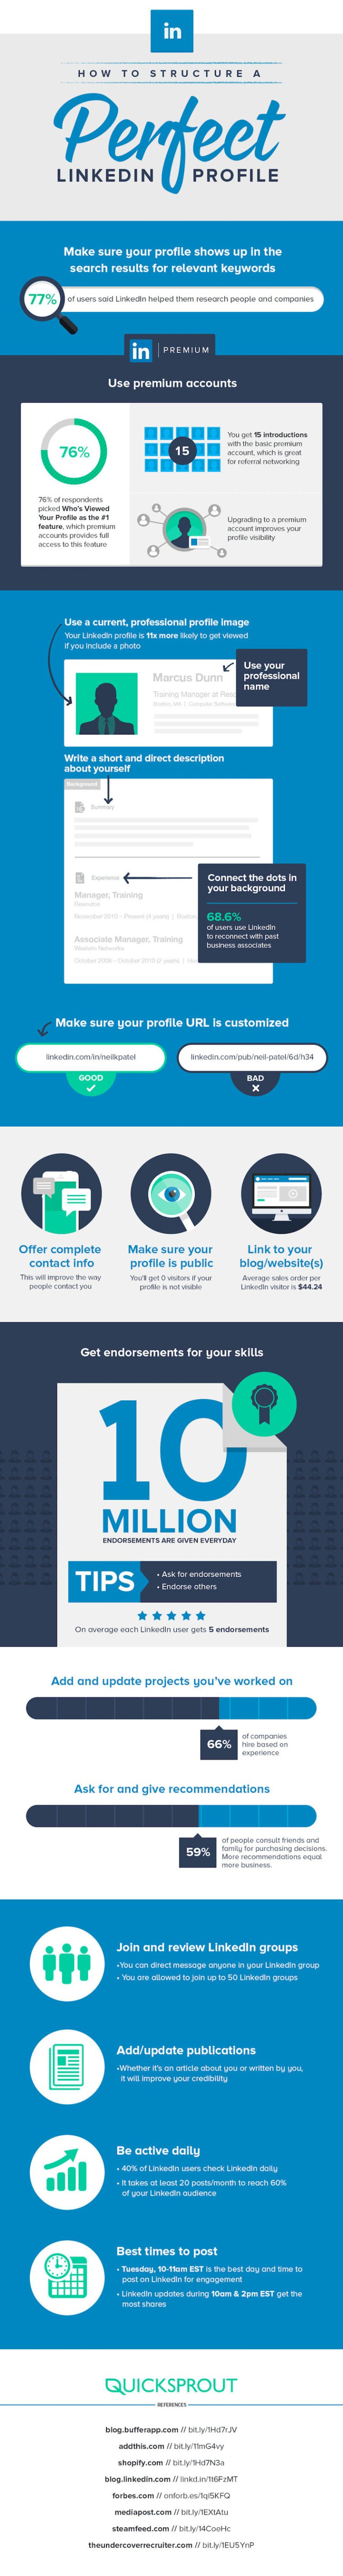 Perfect LinkedIn profile - infographic by QuickSprout